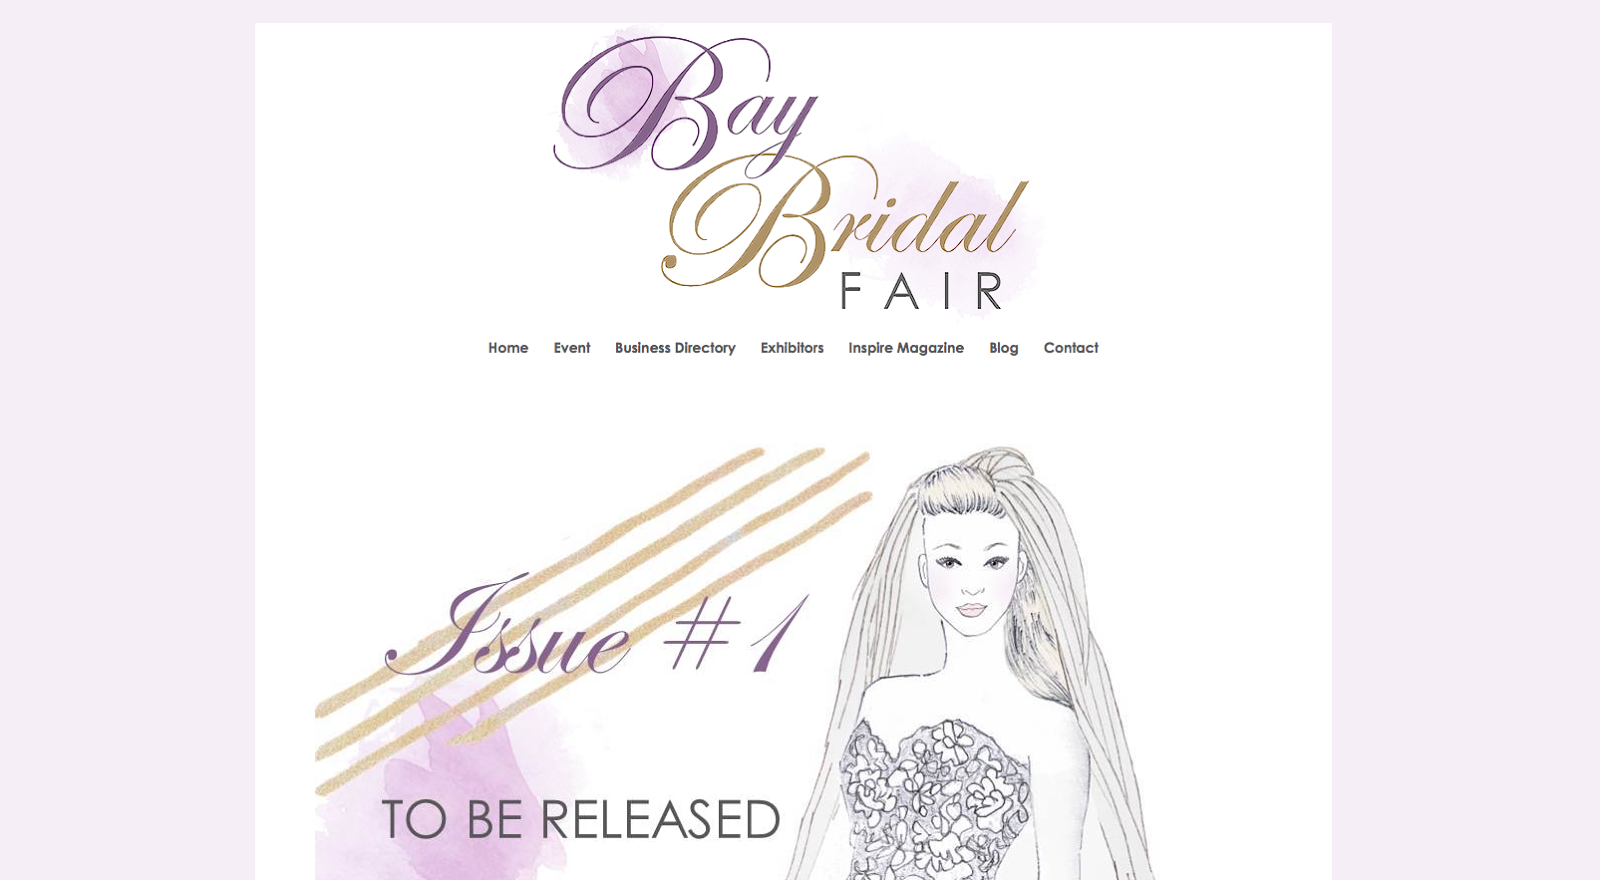 sail and swan logo rebrand bay bridal fair watercolour